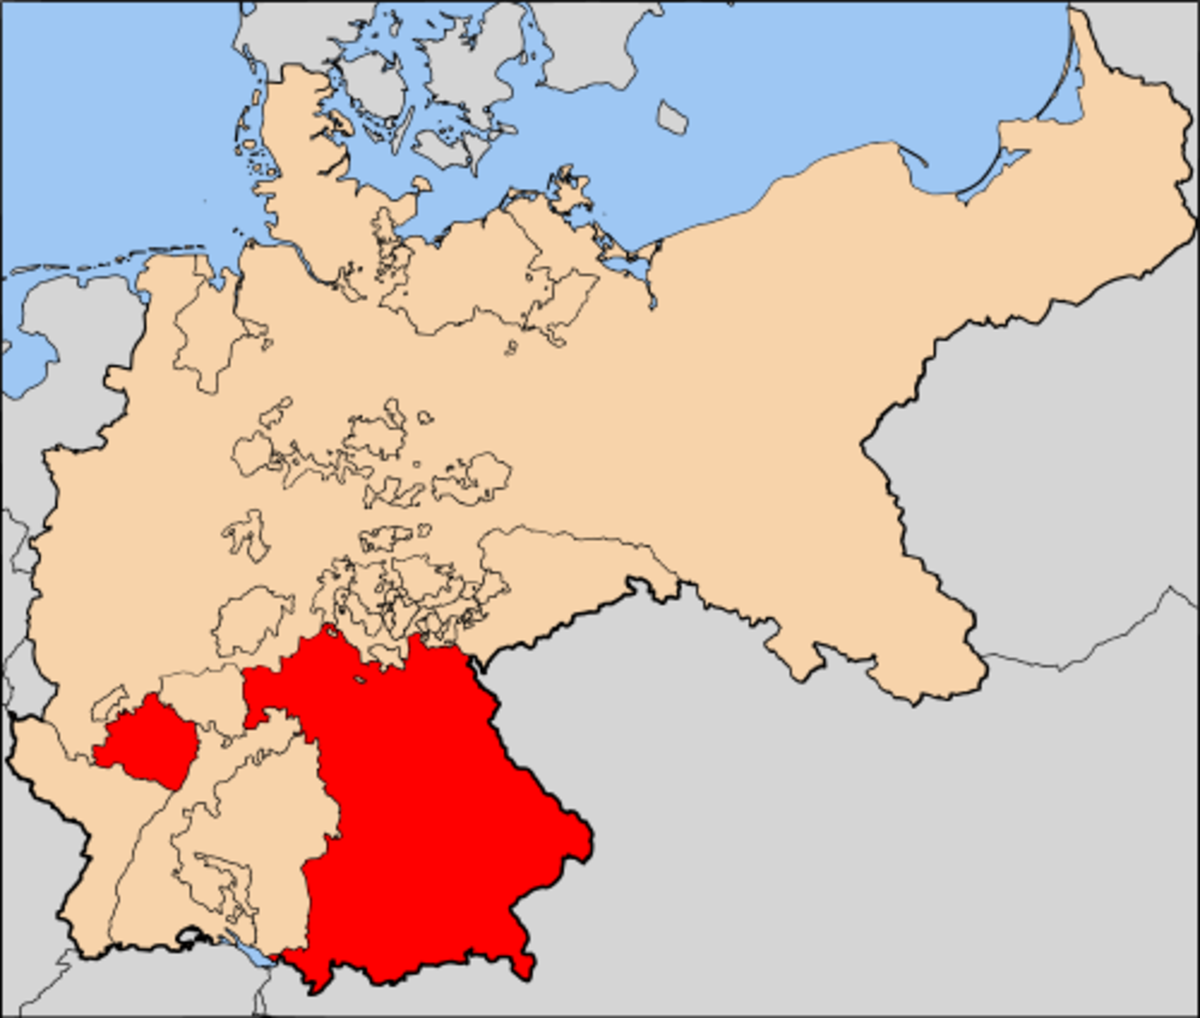 Map showing the nineteenth century Kingdom of Bavaria.